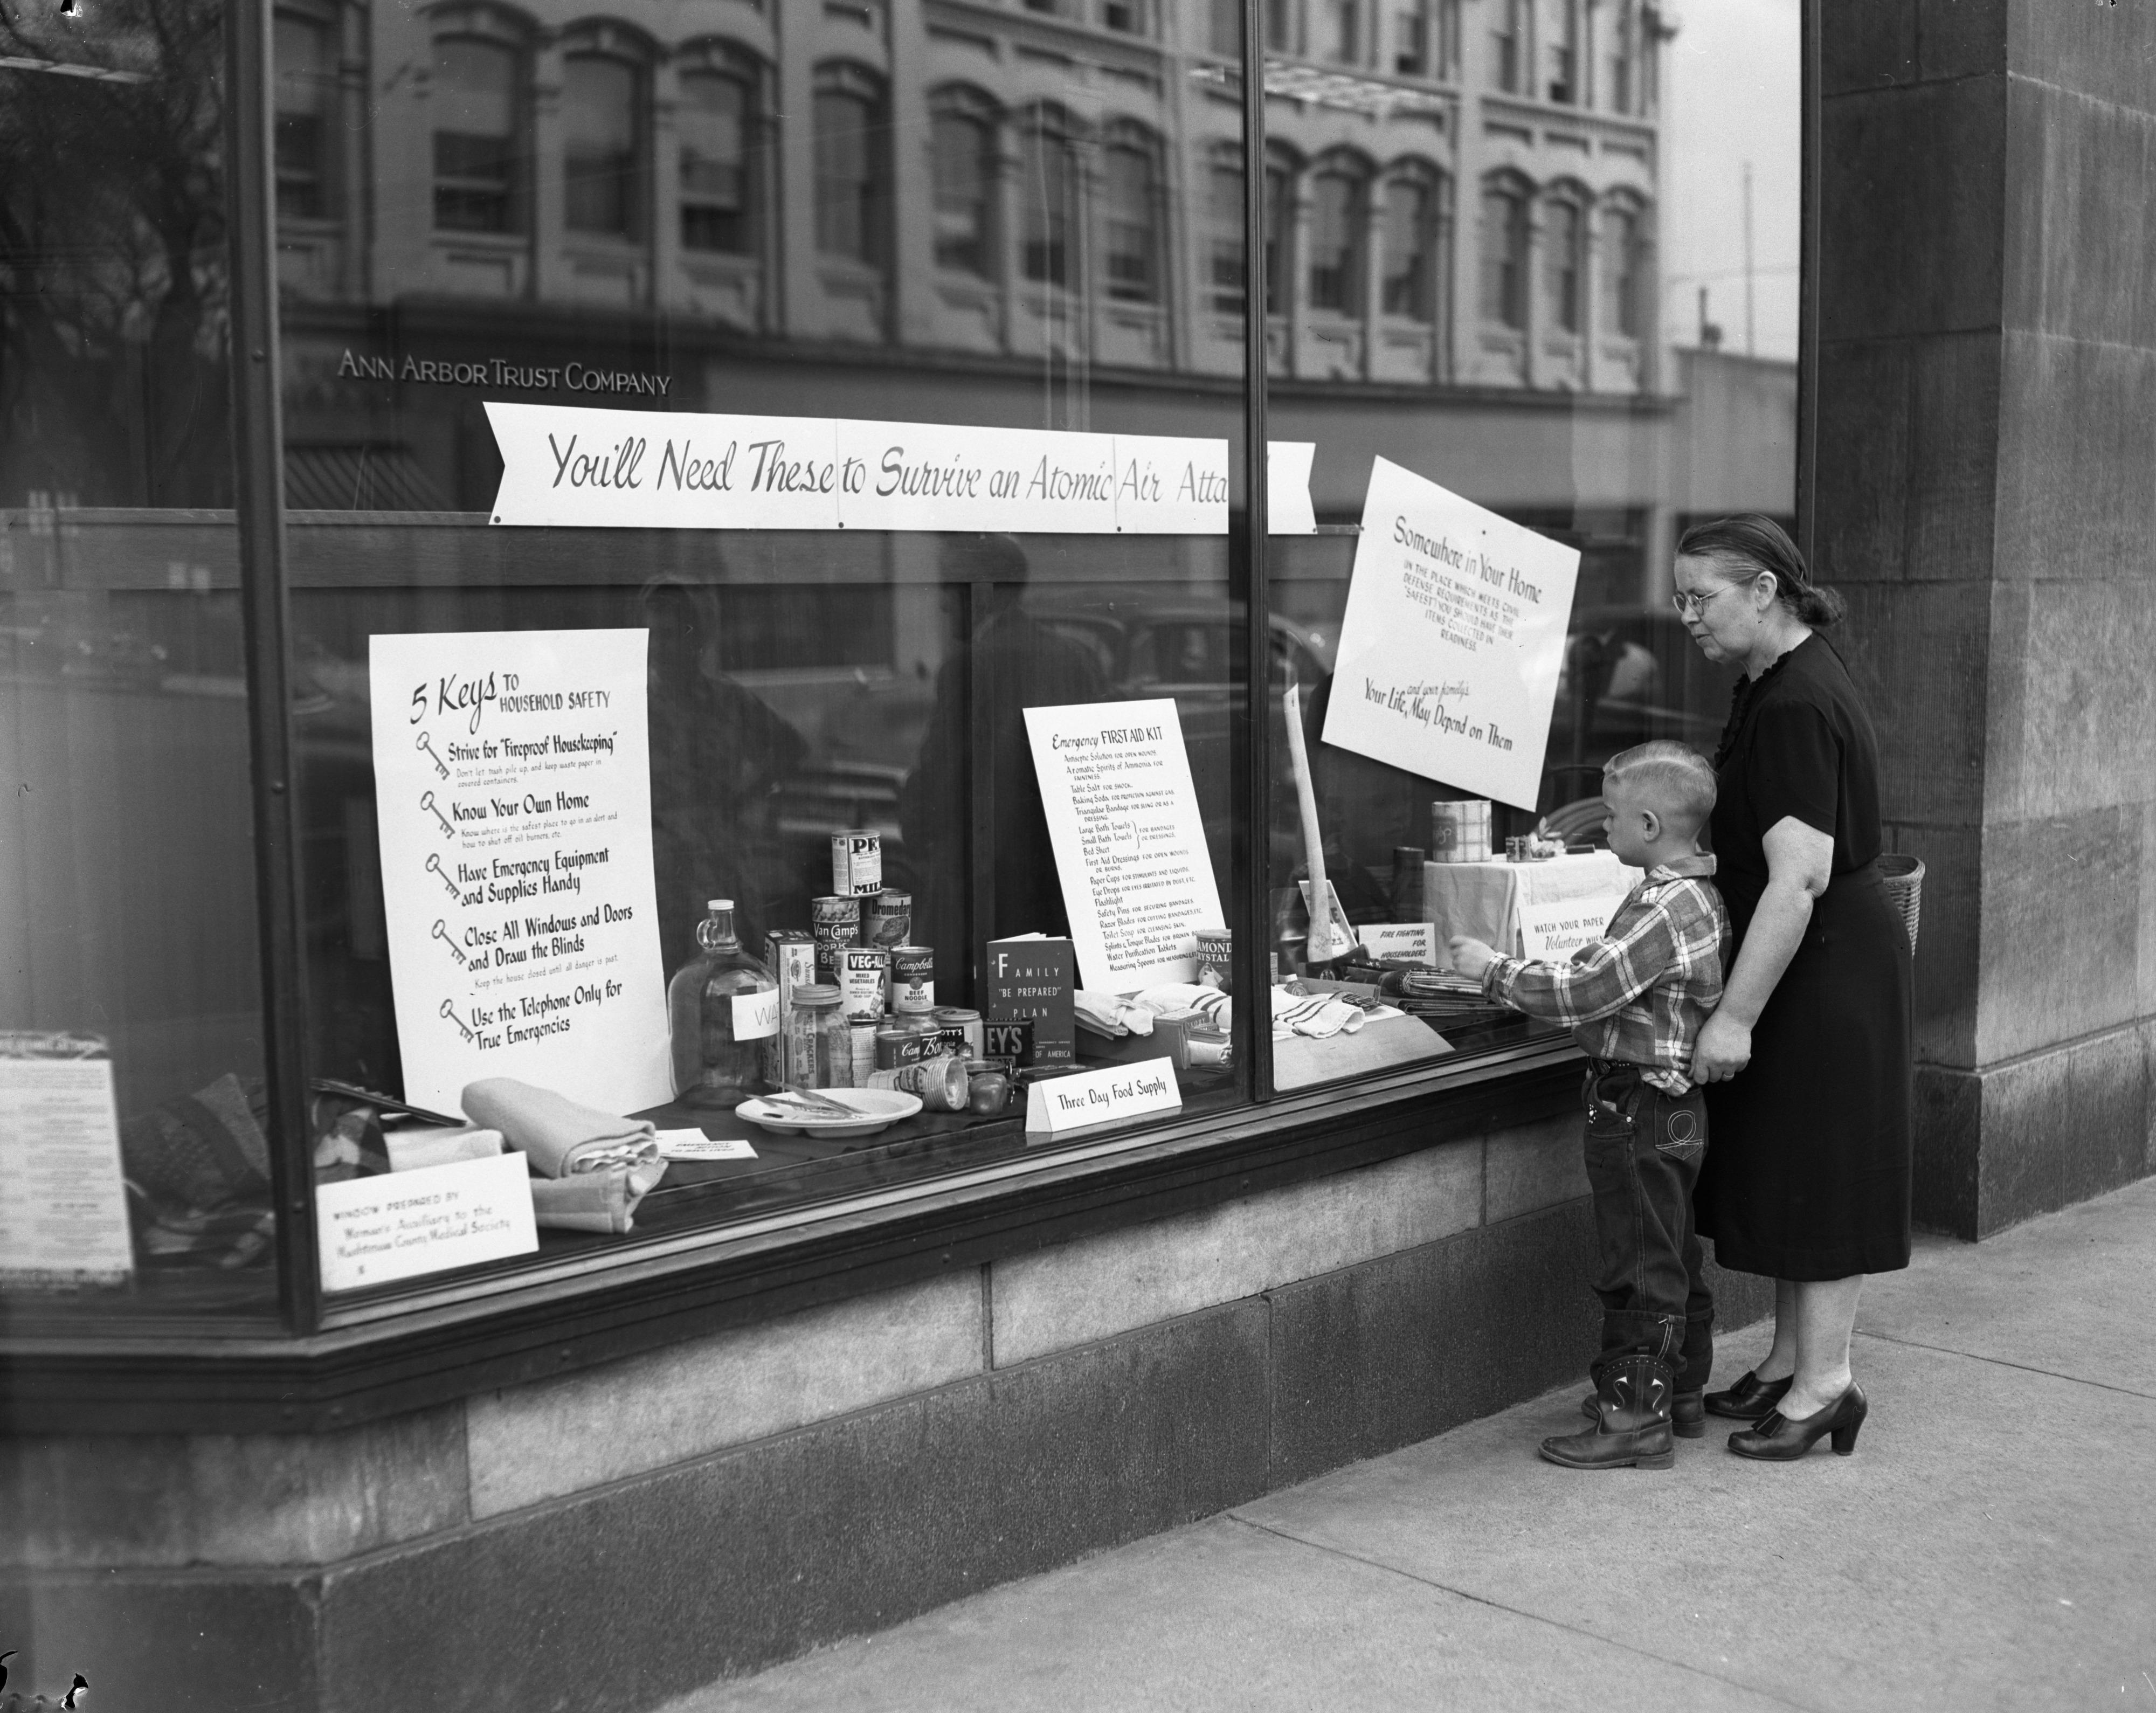 Atomic Survival display in window of Ann Arbor Trust Company, April 1952 image